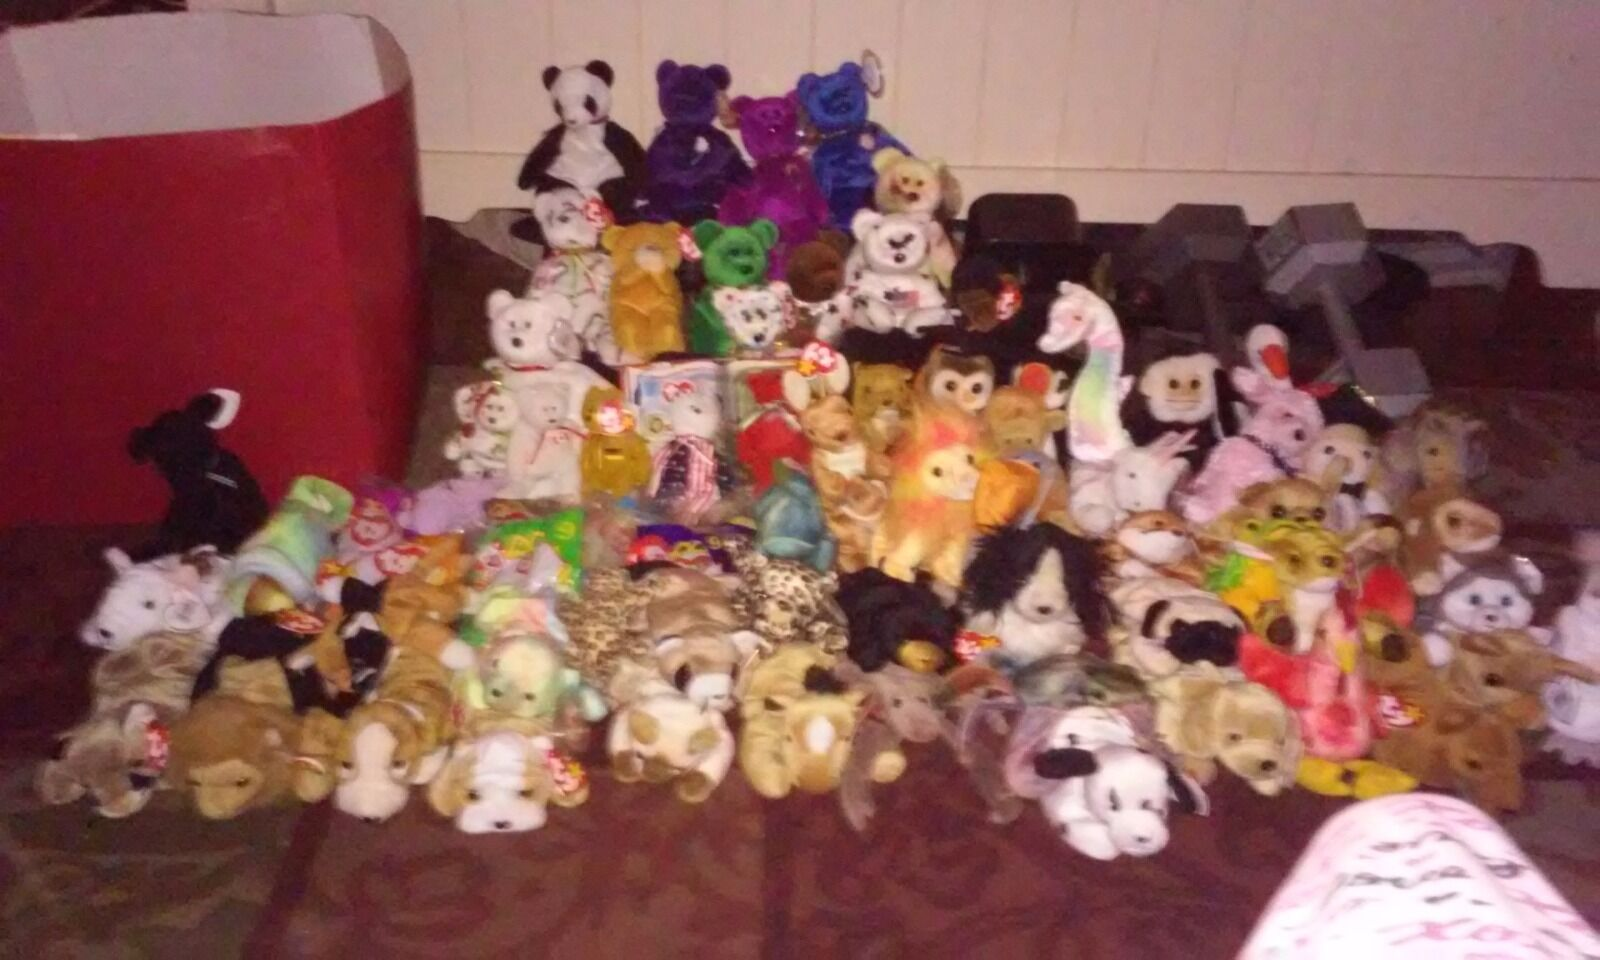 Beanie Babies in need of a new home ASAP.